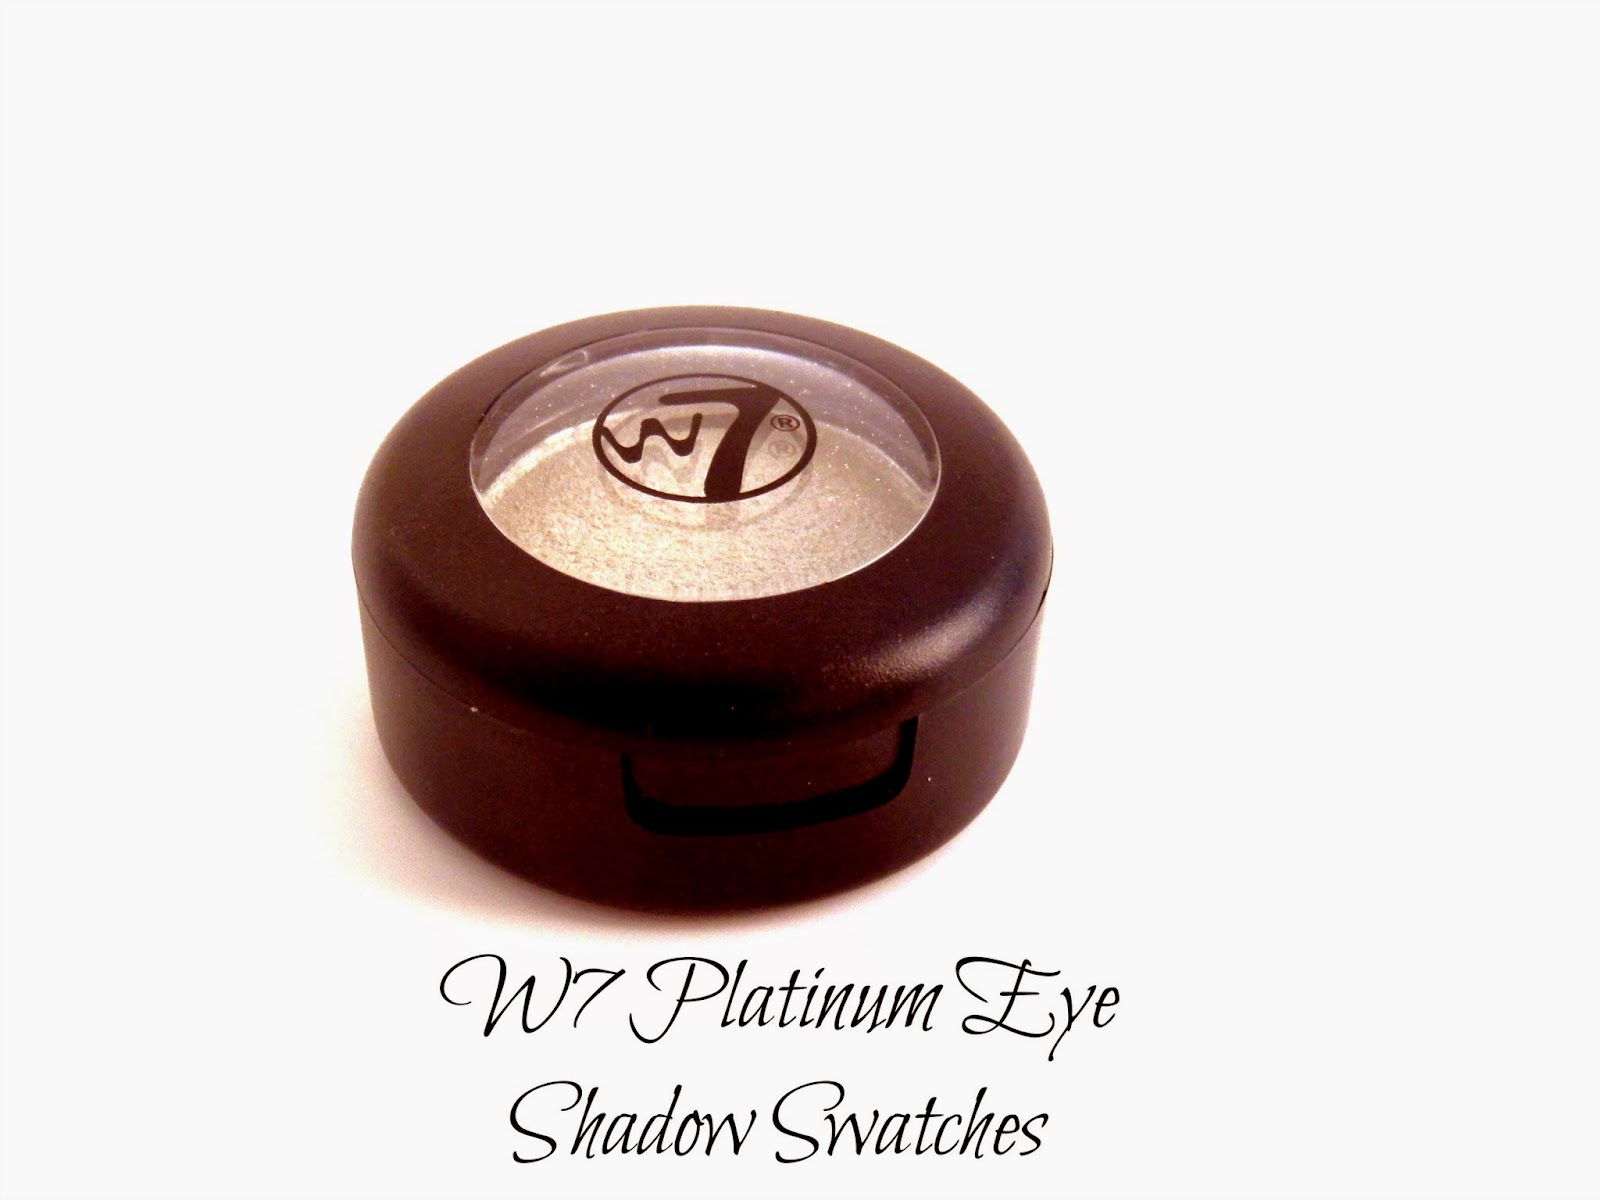 W7 Platinum Eye Shadow Swatches & Reviews